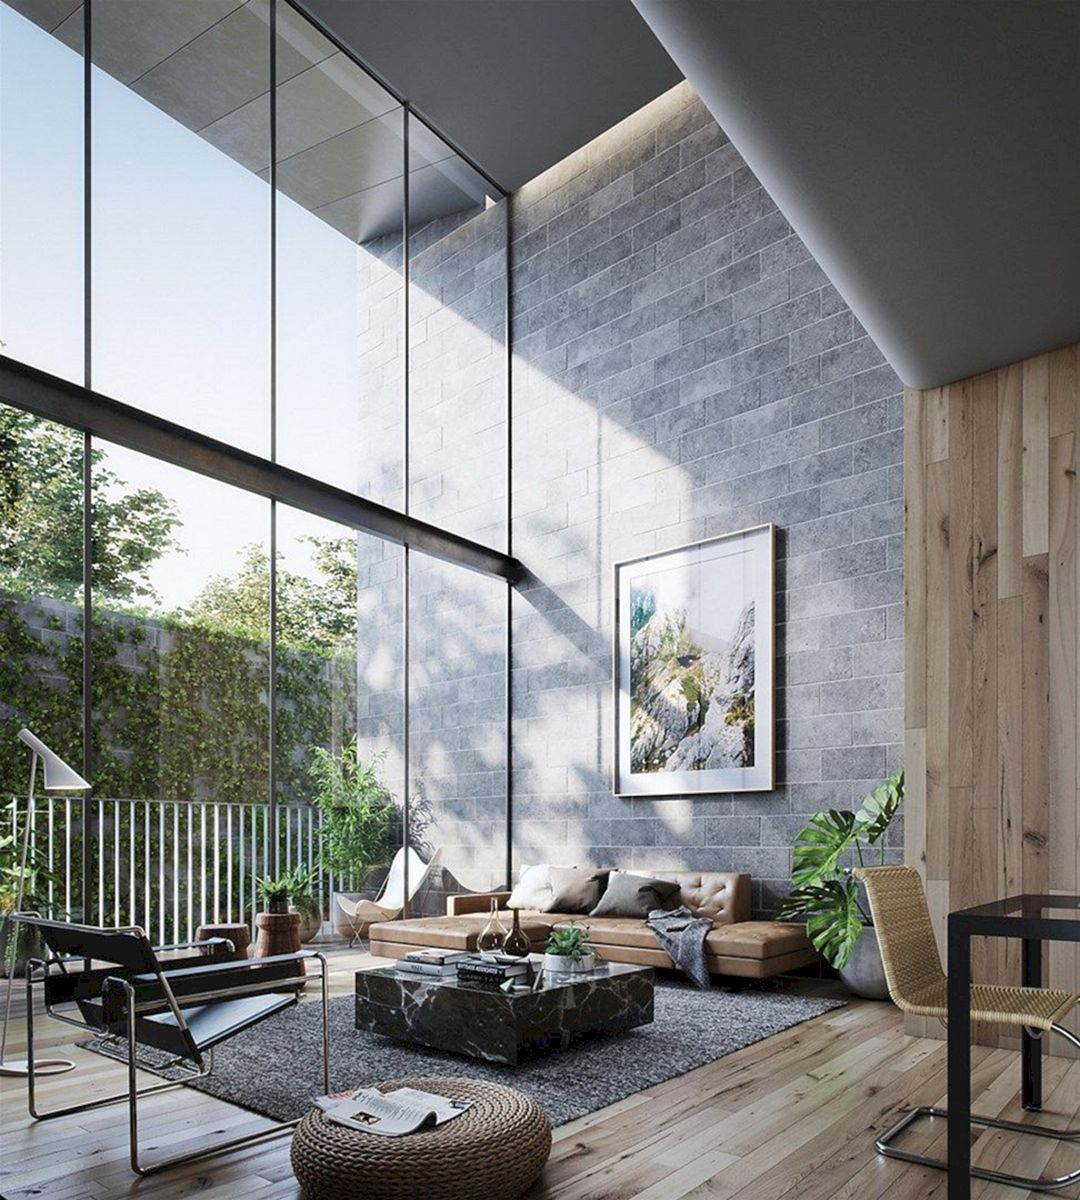 Cool most beautiful home interior design ideas for your future https also rh pinterest